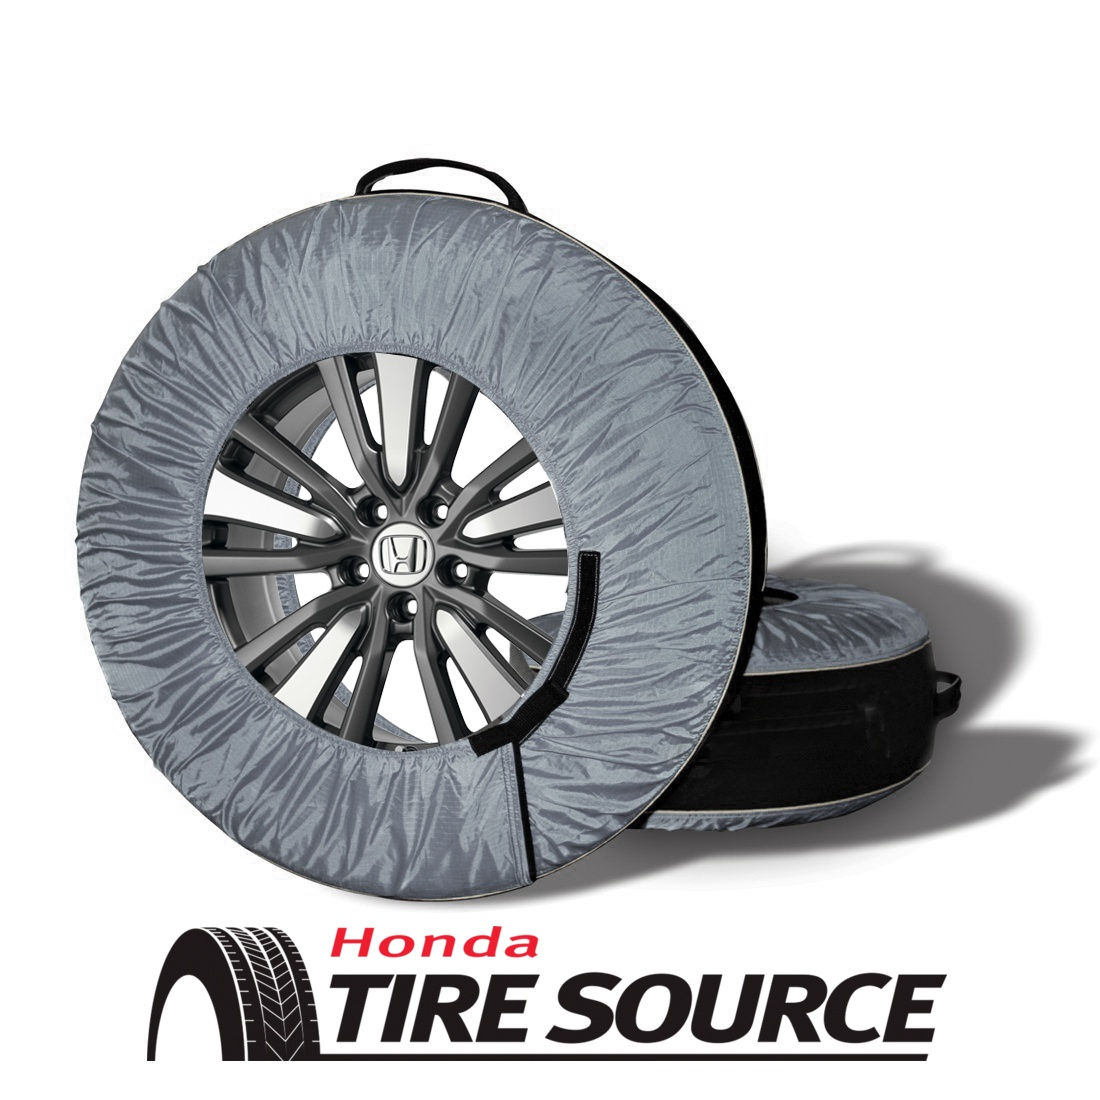 Tire Source Bags